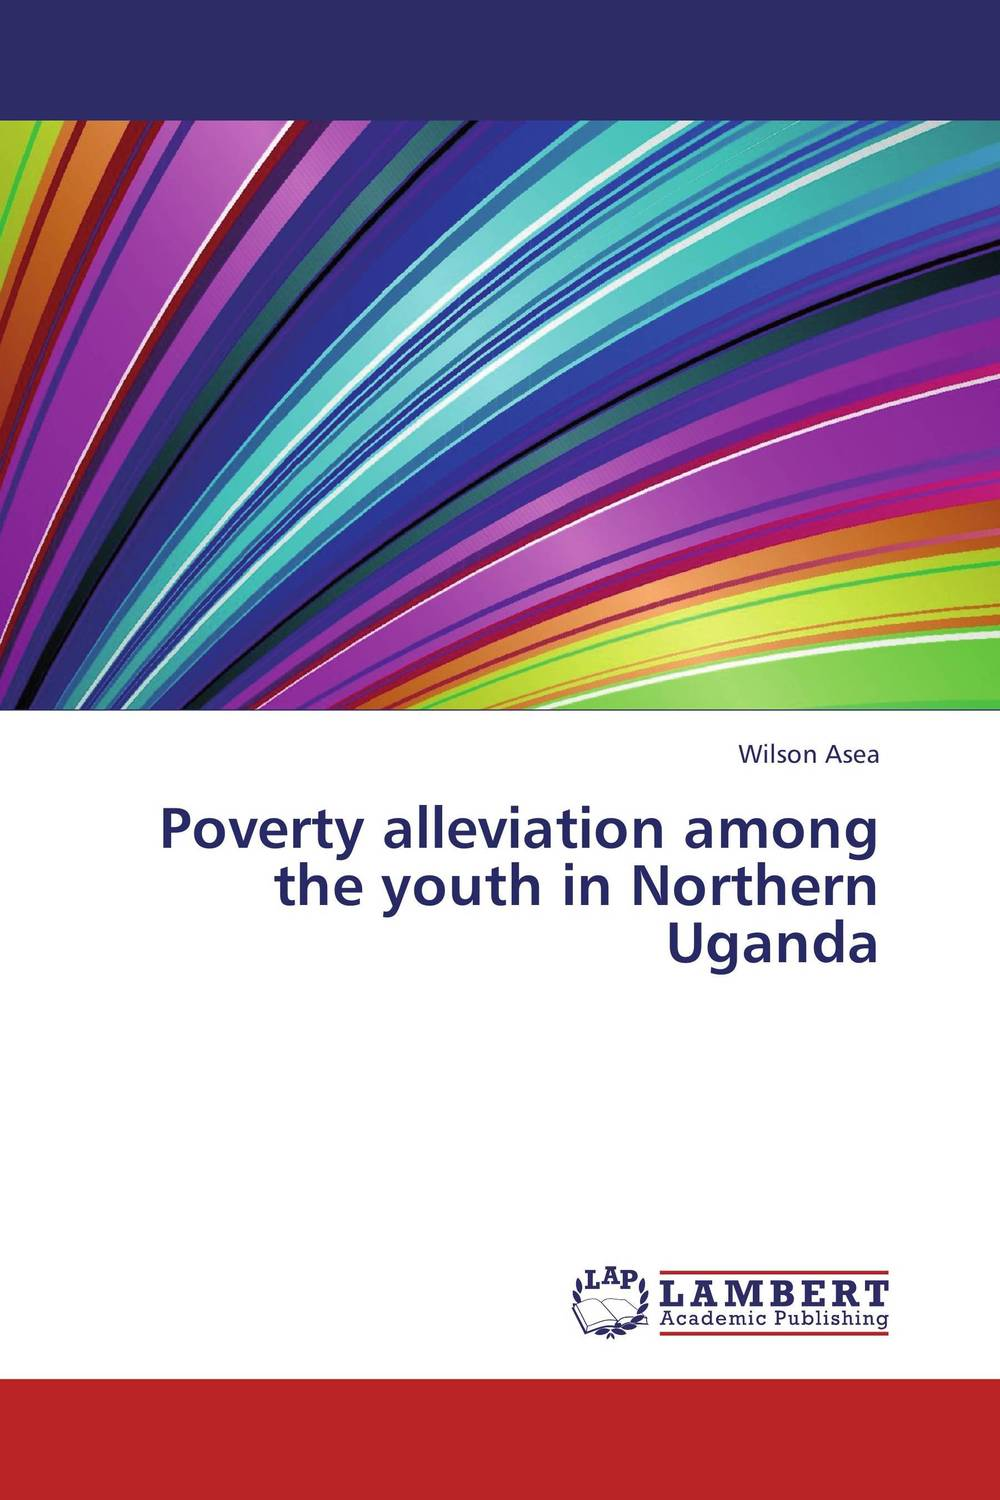 Poverty alleviation among the youth in Northern Uganda